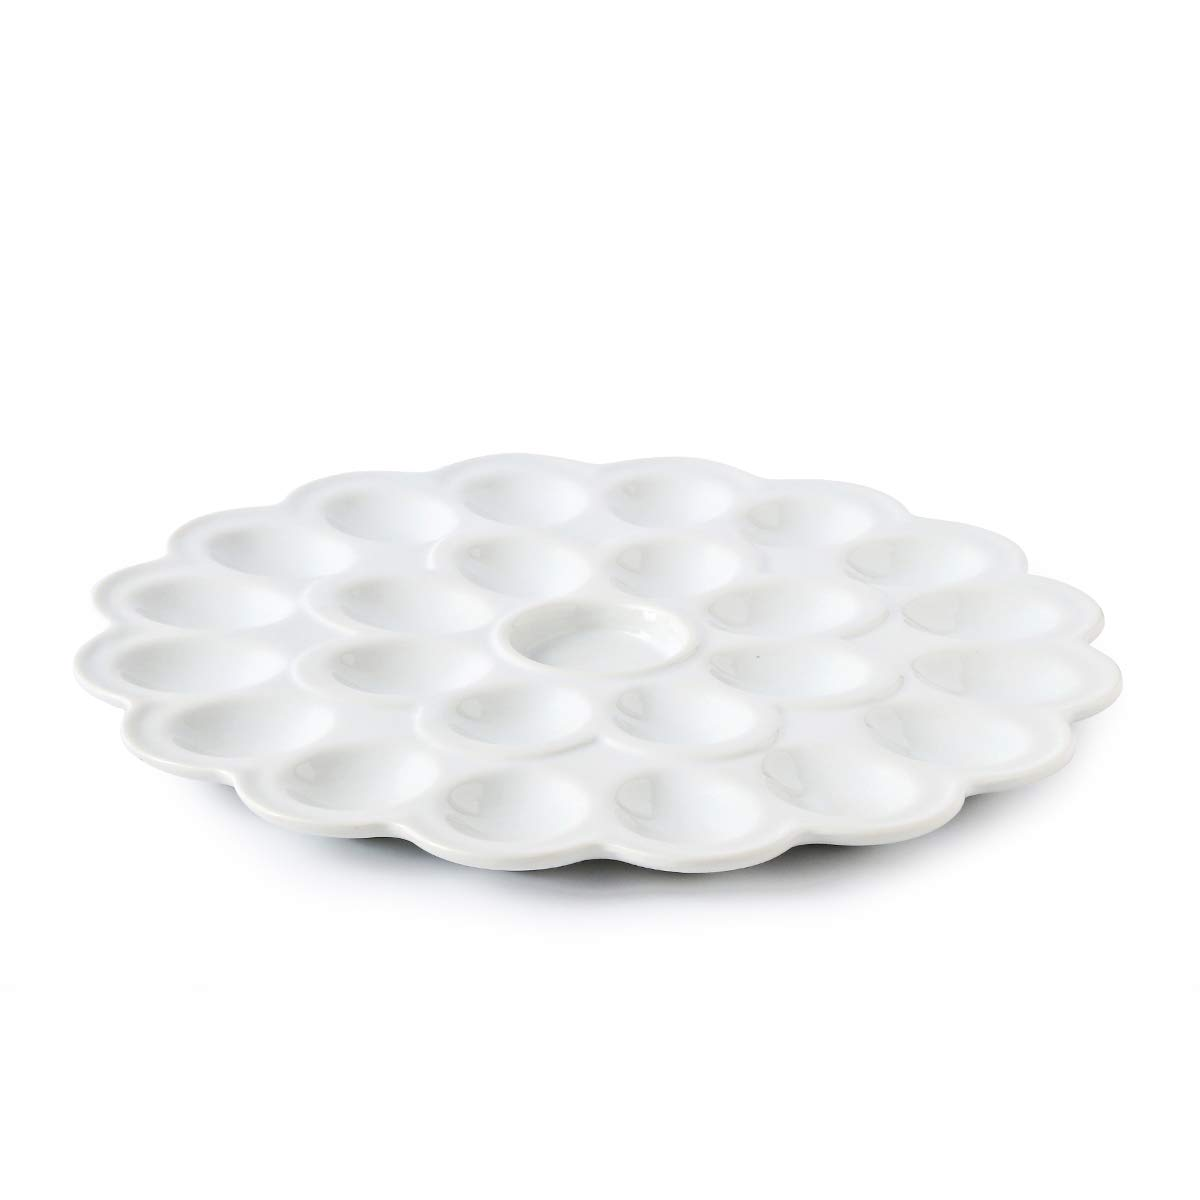 13.5-inch Porcelain Deviled Egg Tray/Dish White Ceramic Egg Platter with 25-Compartment